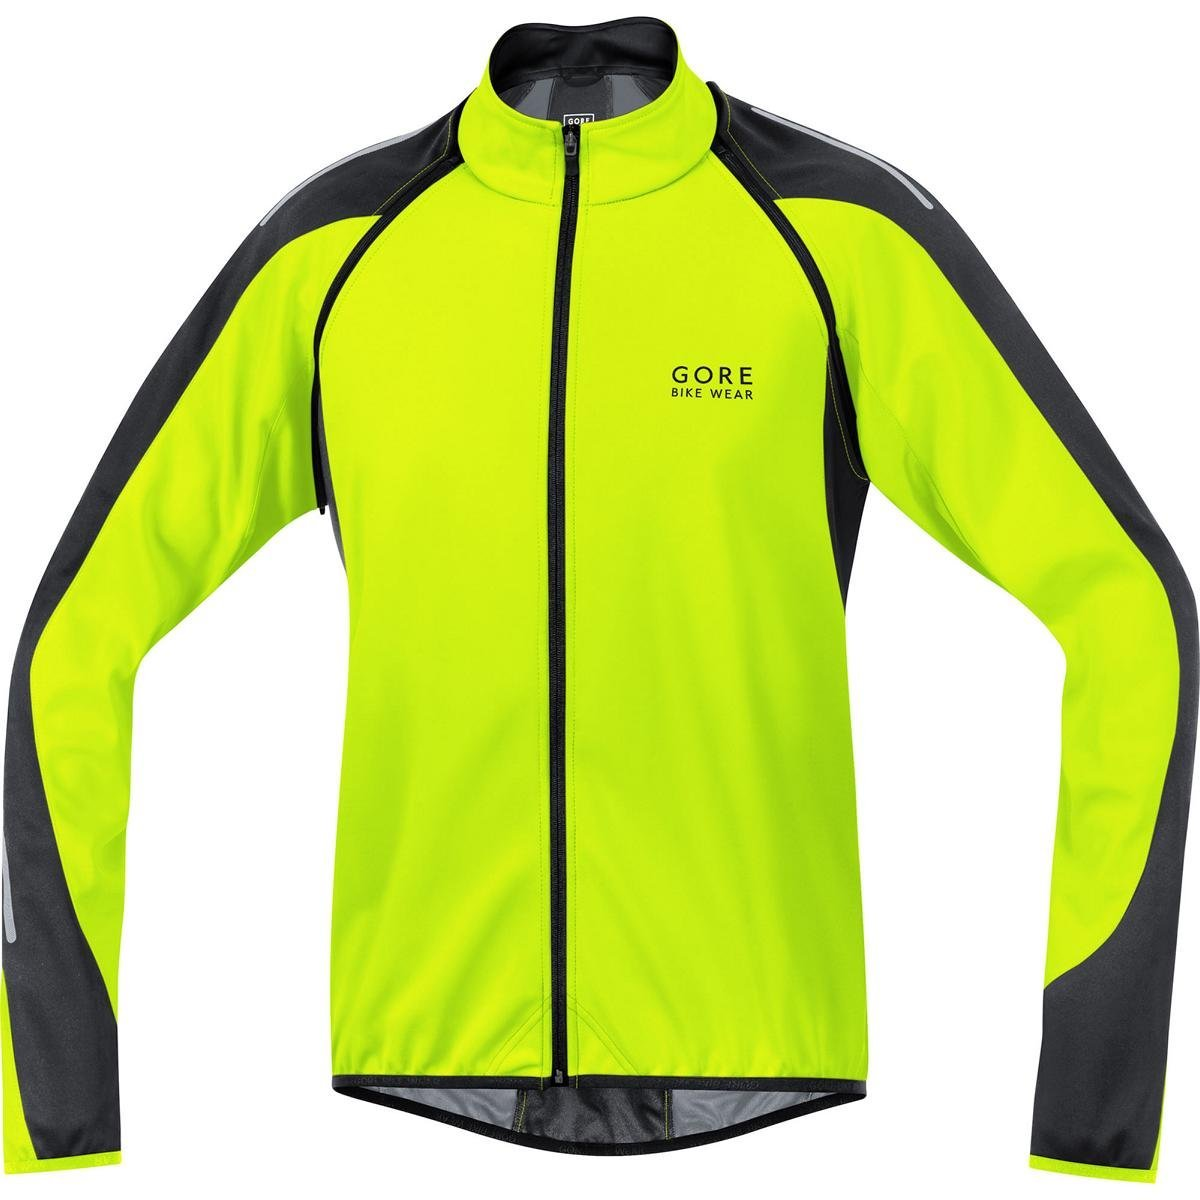 Gore  Bike Wear Phantom 2.0 Windstopper Soft Shell - Chaqueta 3 en 1 para Ciclista de Carretera, Hombre, Amarillo Neón/Negro, XL product image